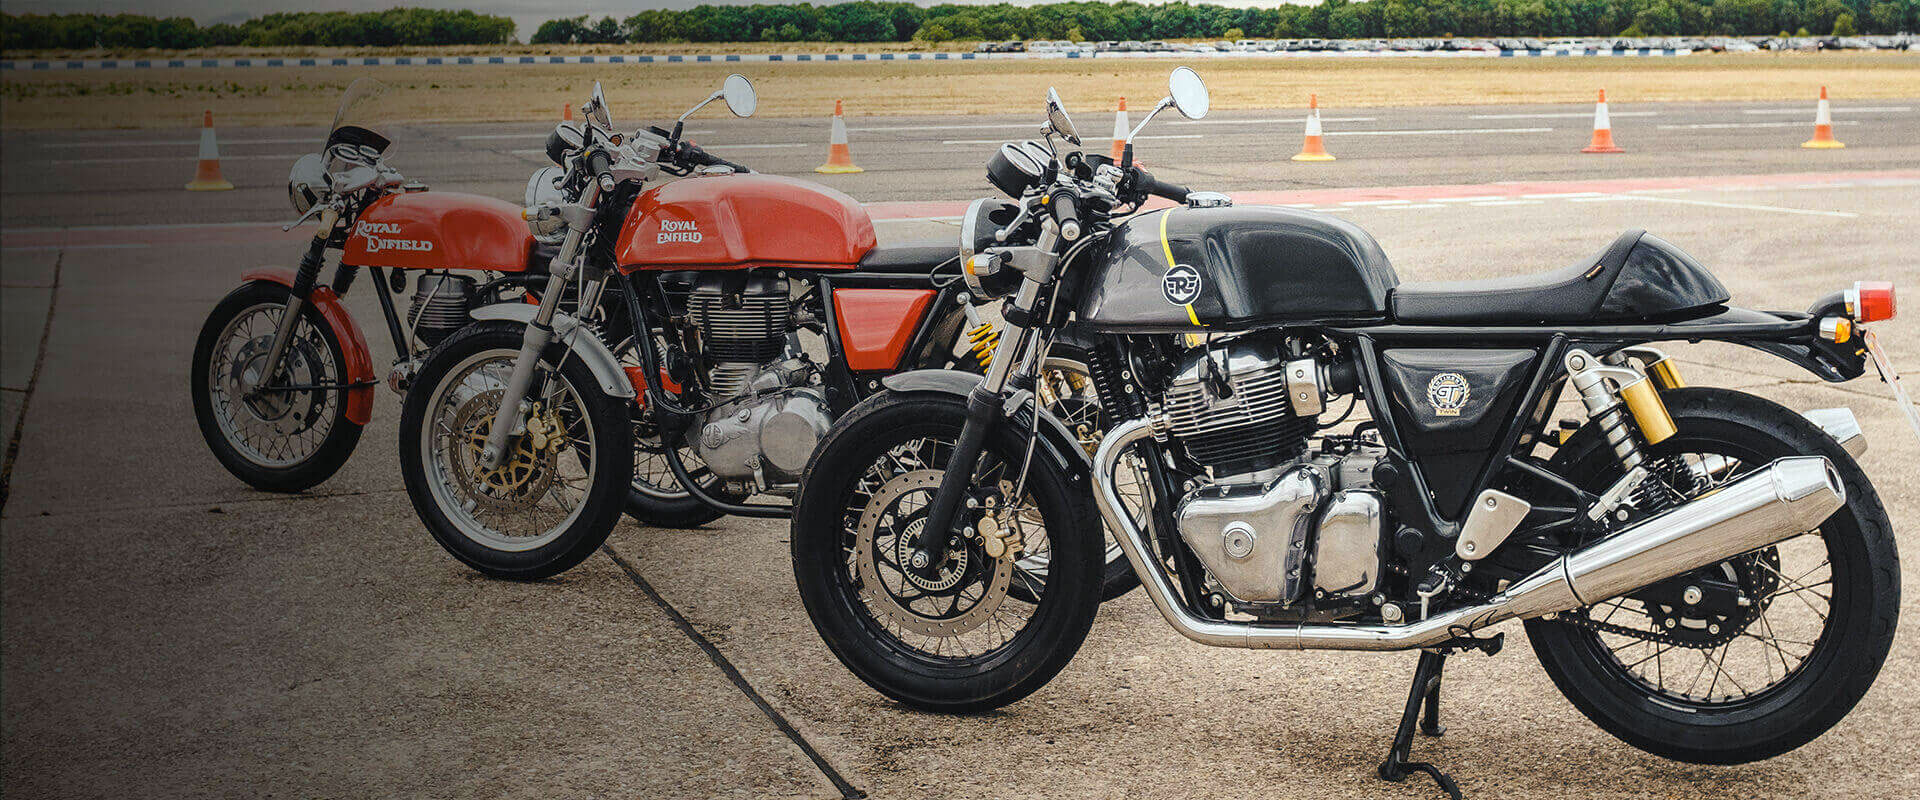 2019 Royal Enfield Continental GT 650 Guide • Total Motorcycle